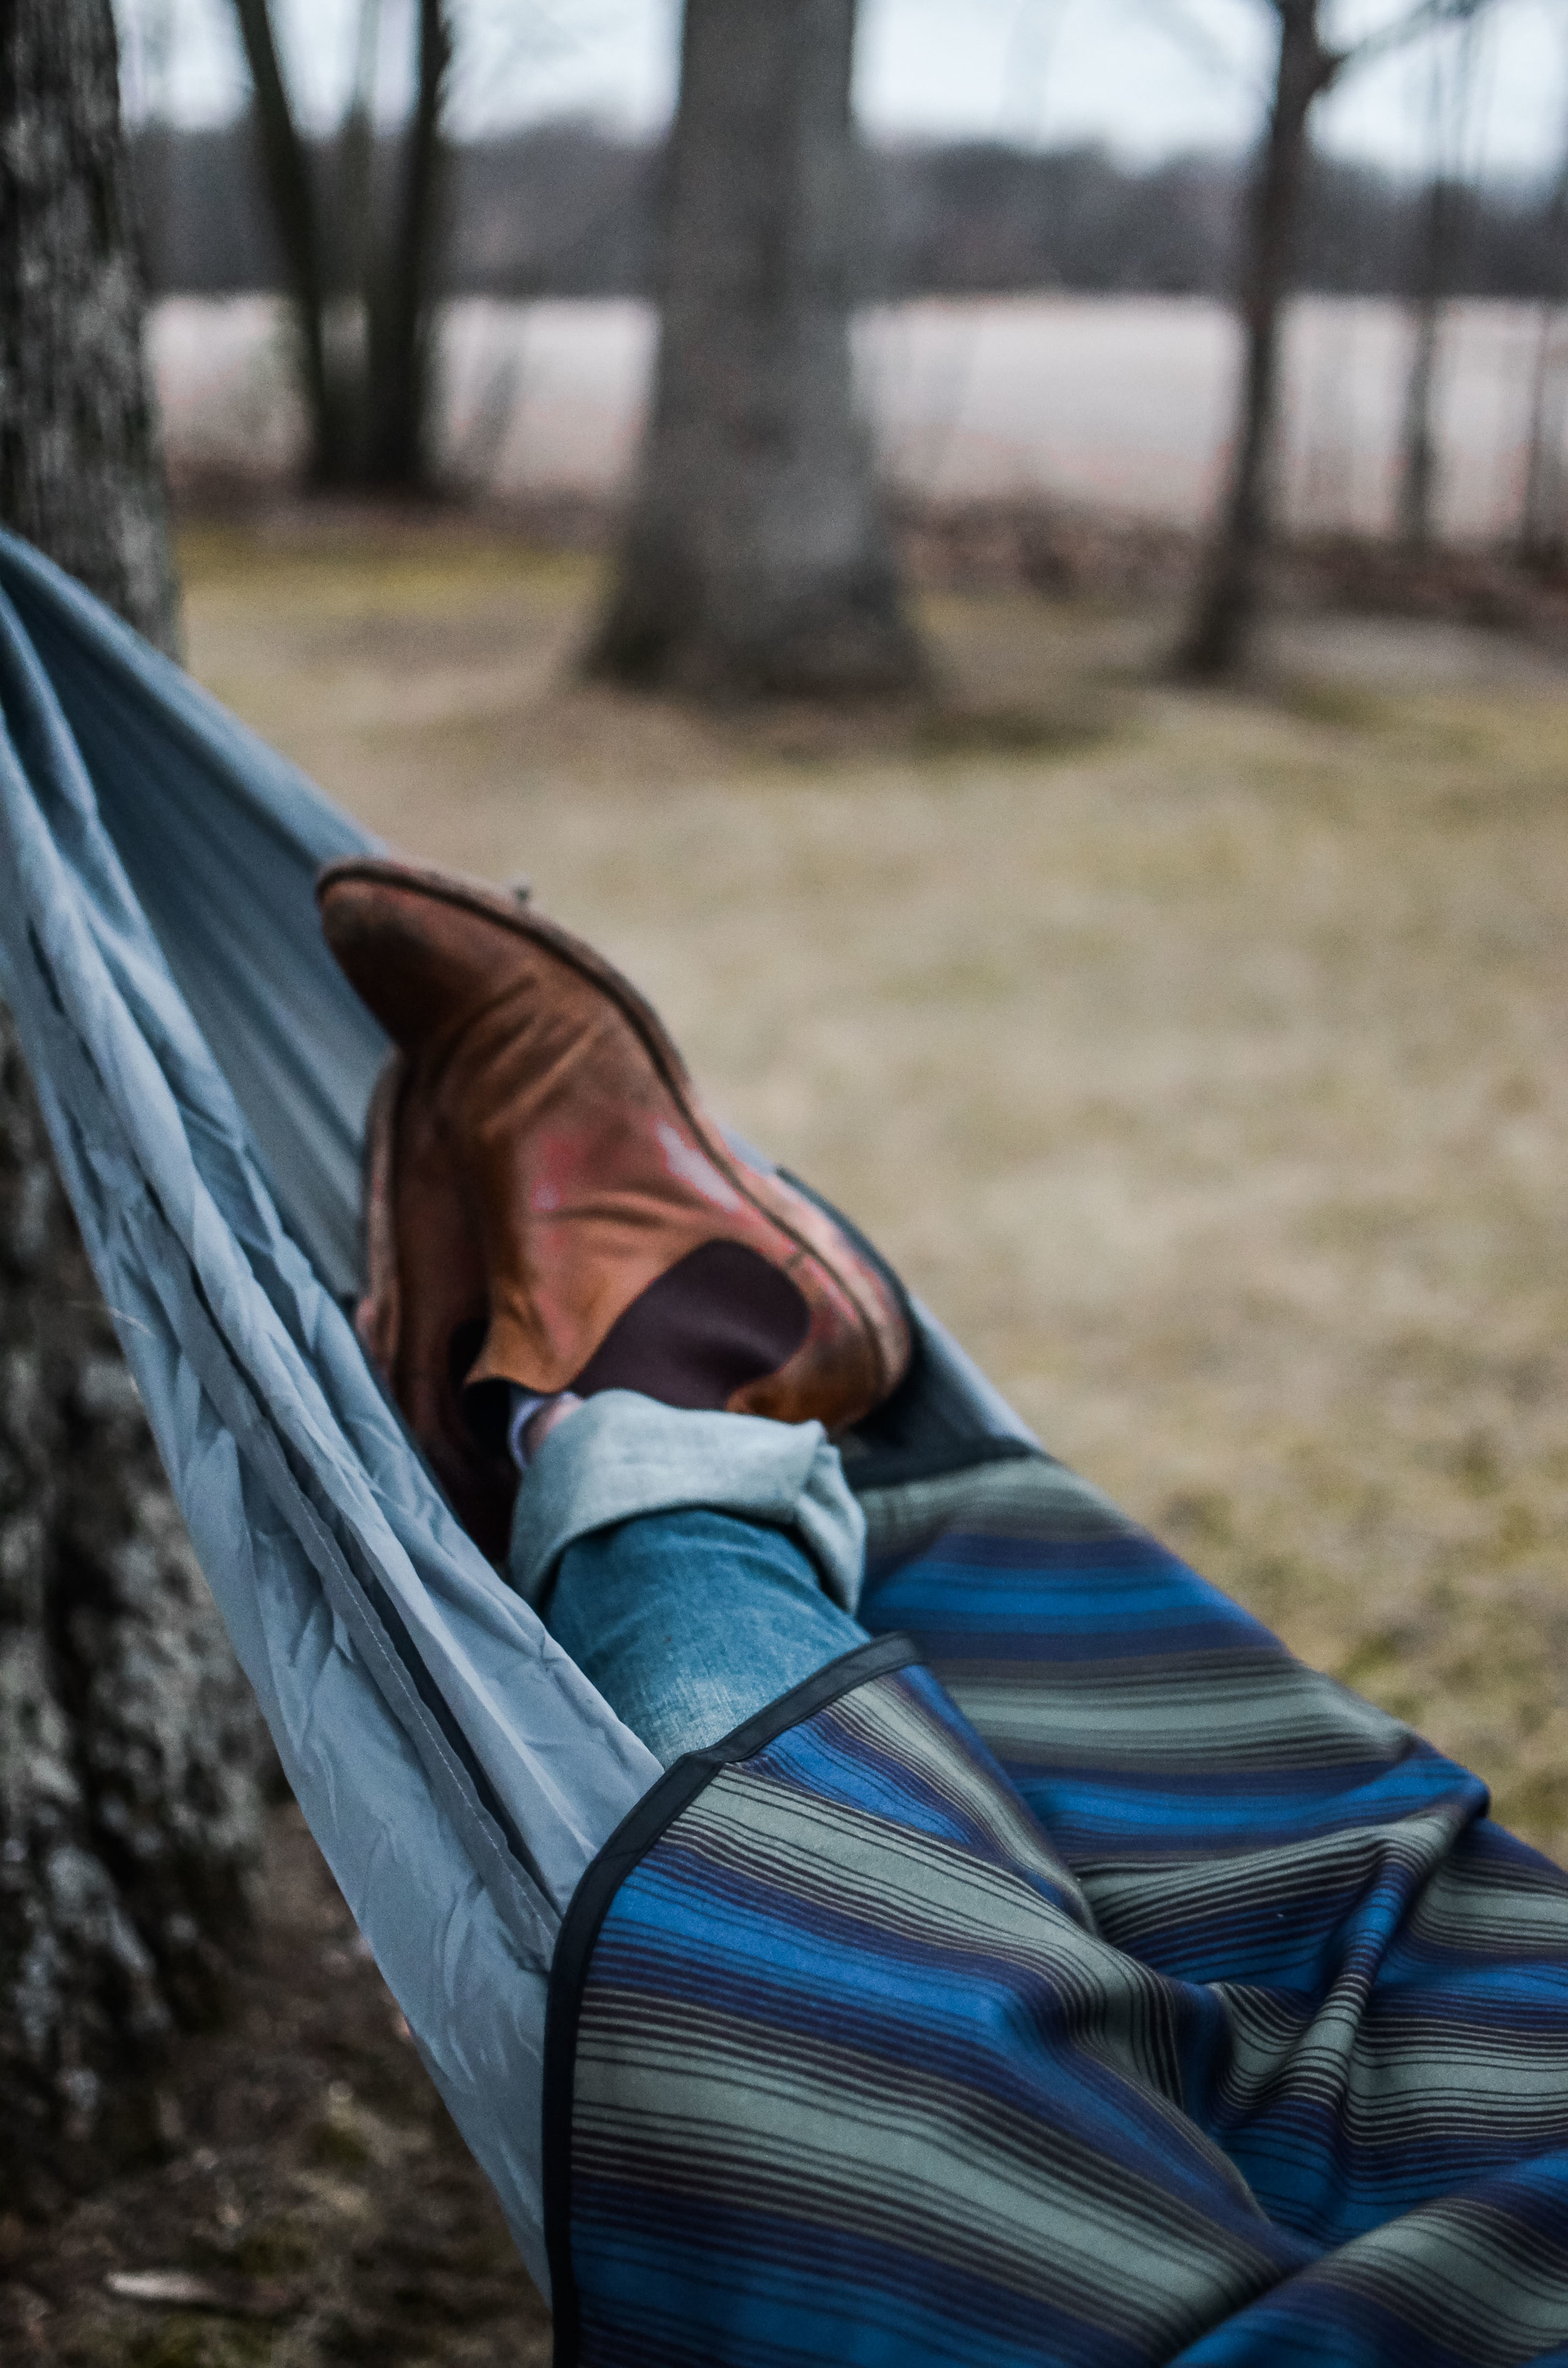 Spring_Is_Here_Bespoke_Post_Coaltree_Hammock_Camping-7.jpg